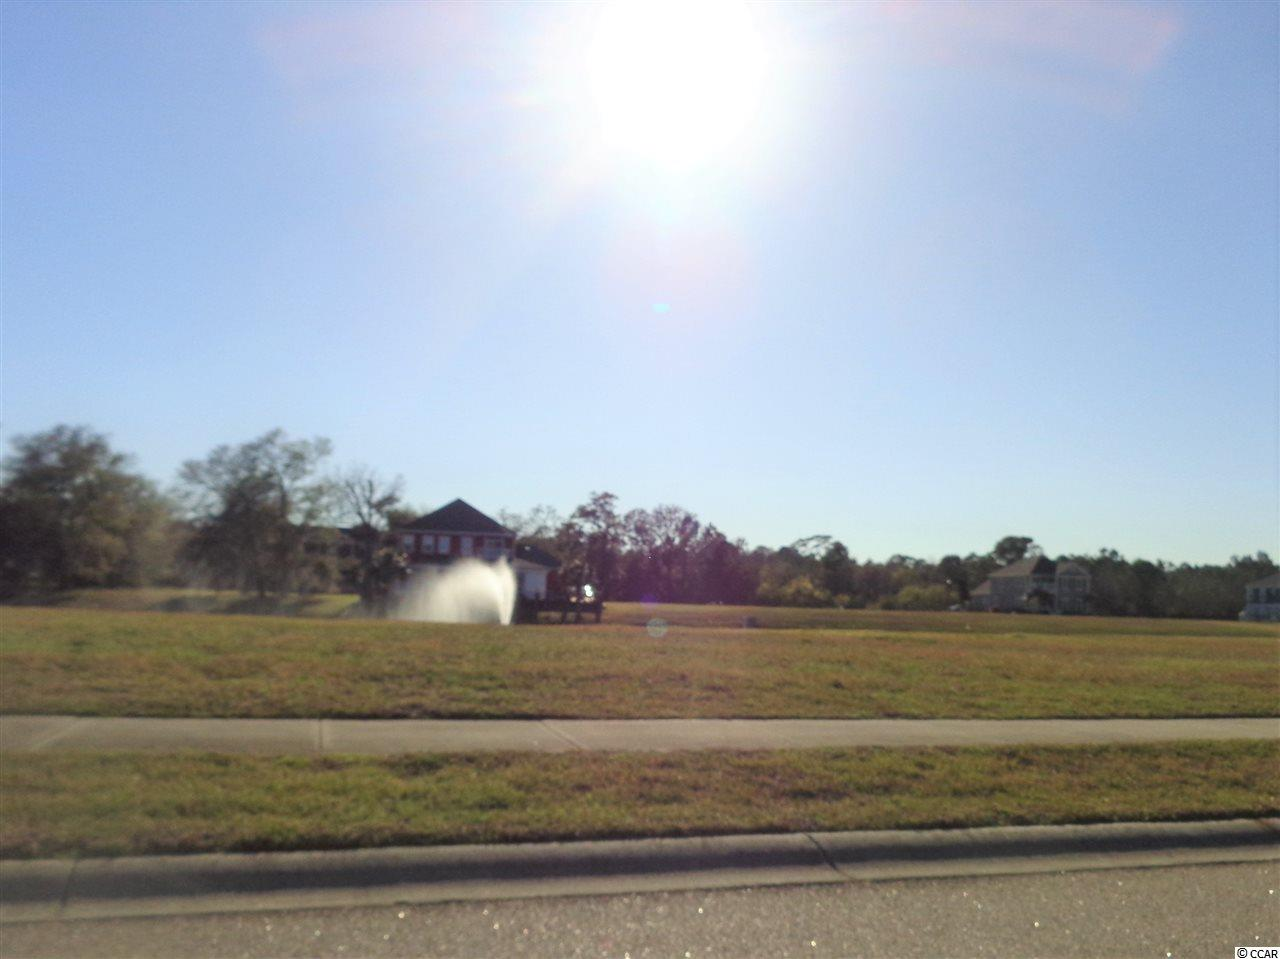 """One of the largest lots overlooking beautiful water feature in the Awesome """"Charleston style"""" community. Only a short stroll from the amenities center with beautiful pool overlooking marsh with view toward Cherry Grove beach area. Fun play area  and several lake areas with lovely  gavebos for leisure walks.  Very short drive to fine dining, golf, shopping and Of Course, beautiful beaches on the Atlantic Ocean!  Perfect place for your new home!!!"""